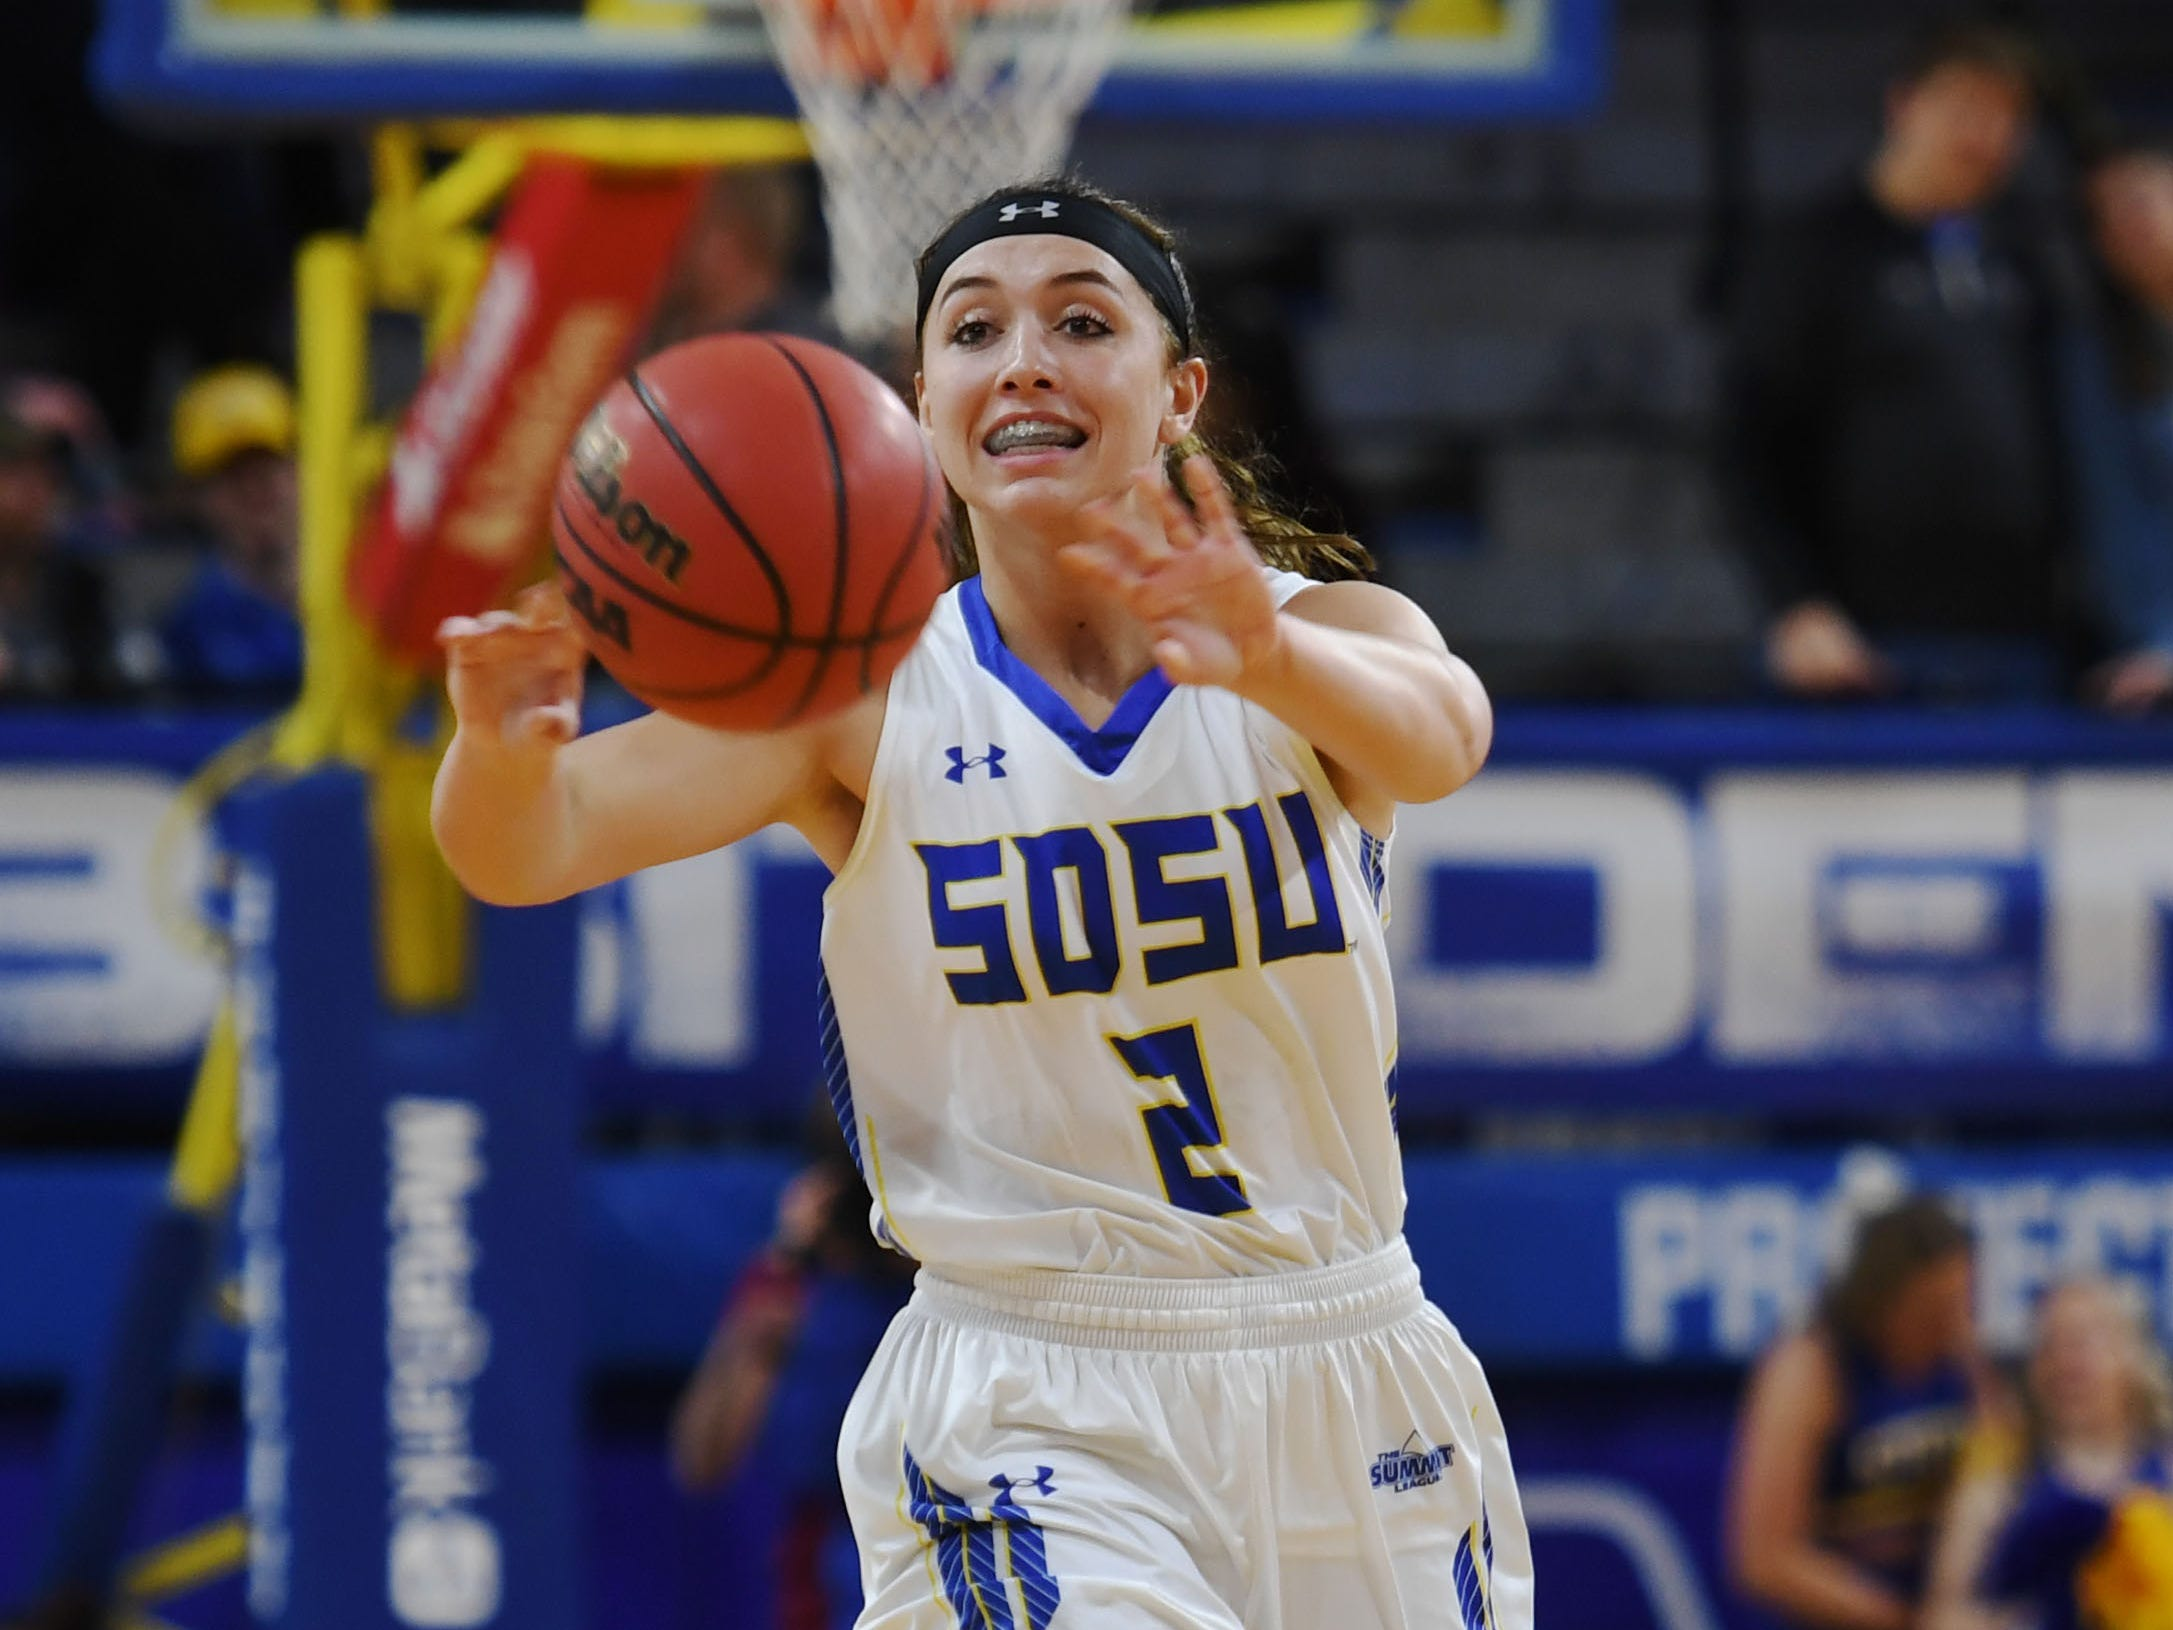 SDSU's Rylie Cascio Jensen passes the ball up the court during the game against NDSU Wednesday, Jan. 23, at Frost Arena in Brookings.